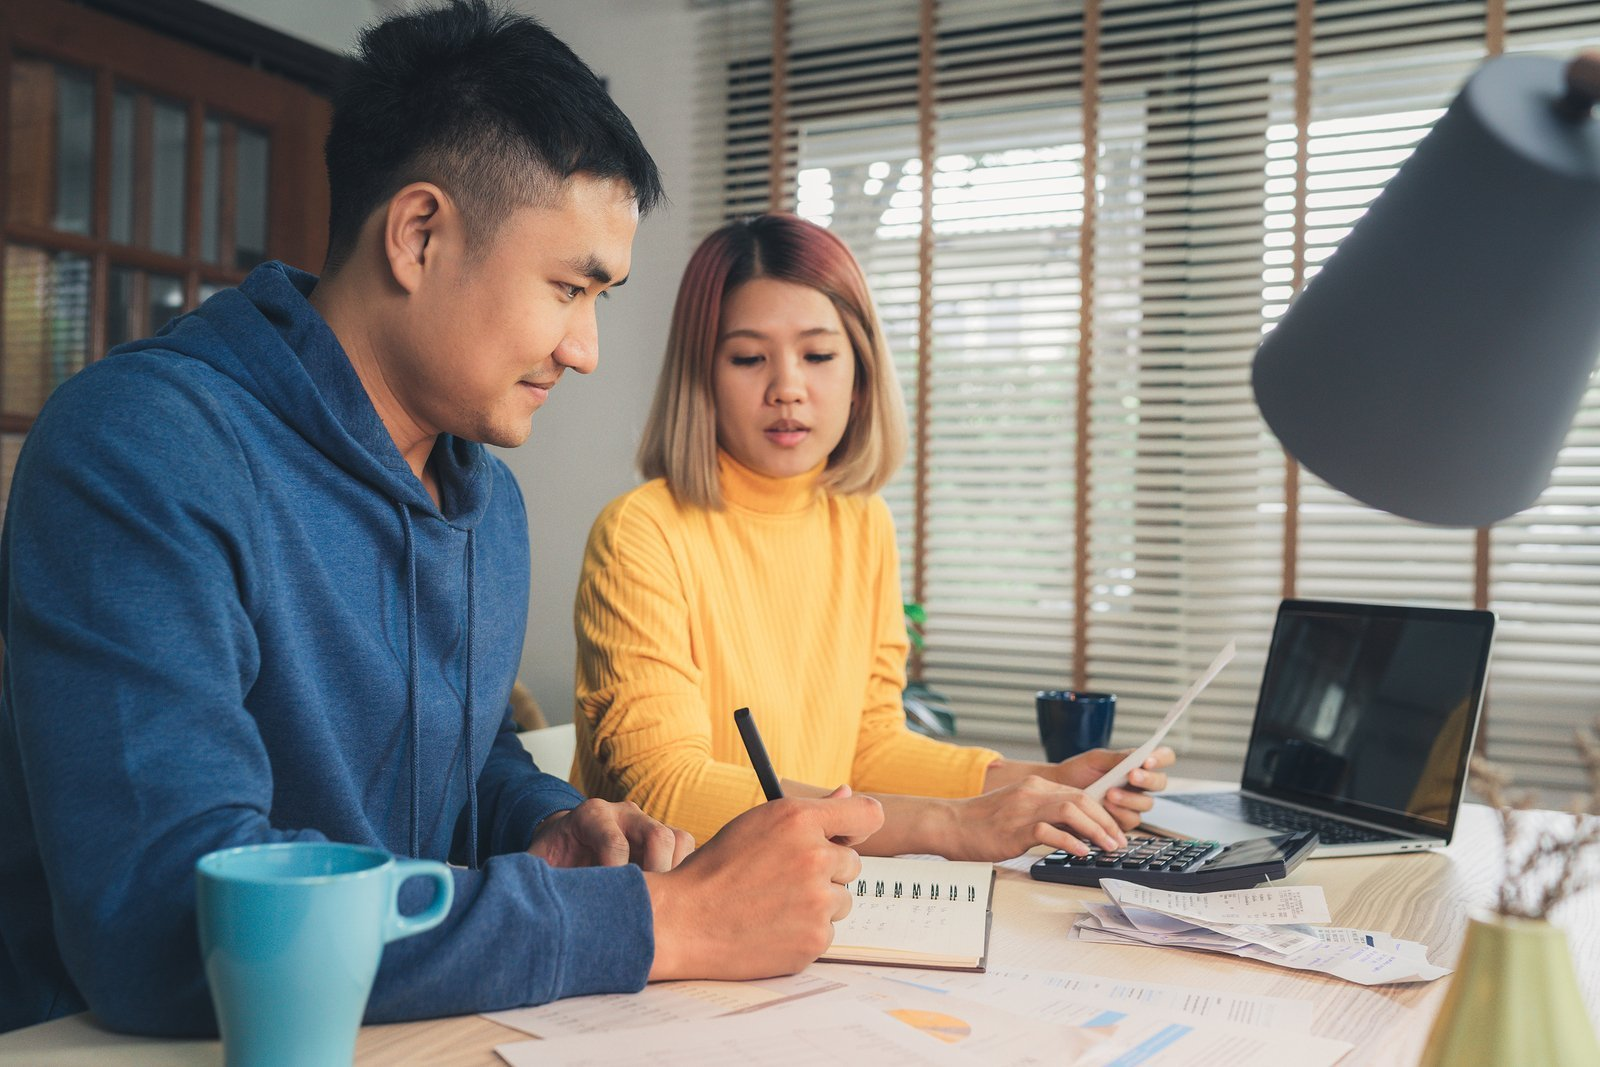 Use Your 2018 Tax Return to Adjust Your 2019 Withholding